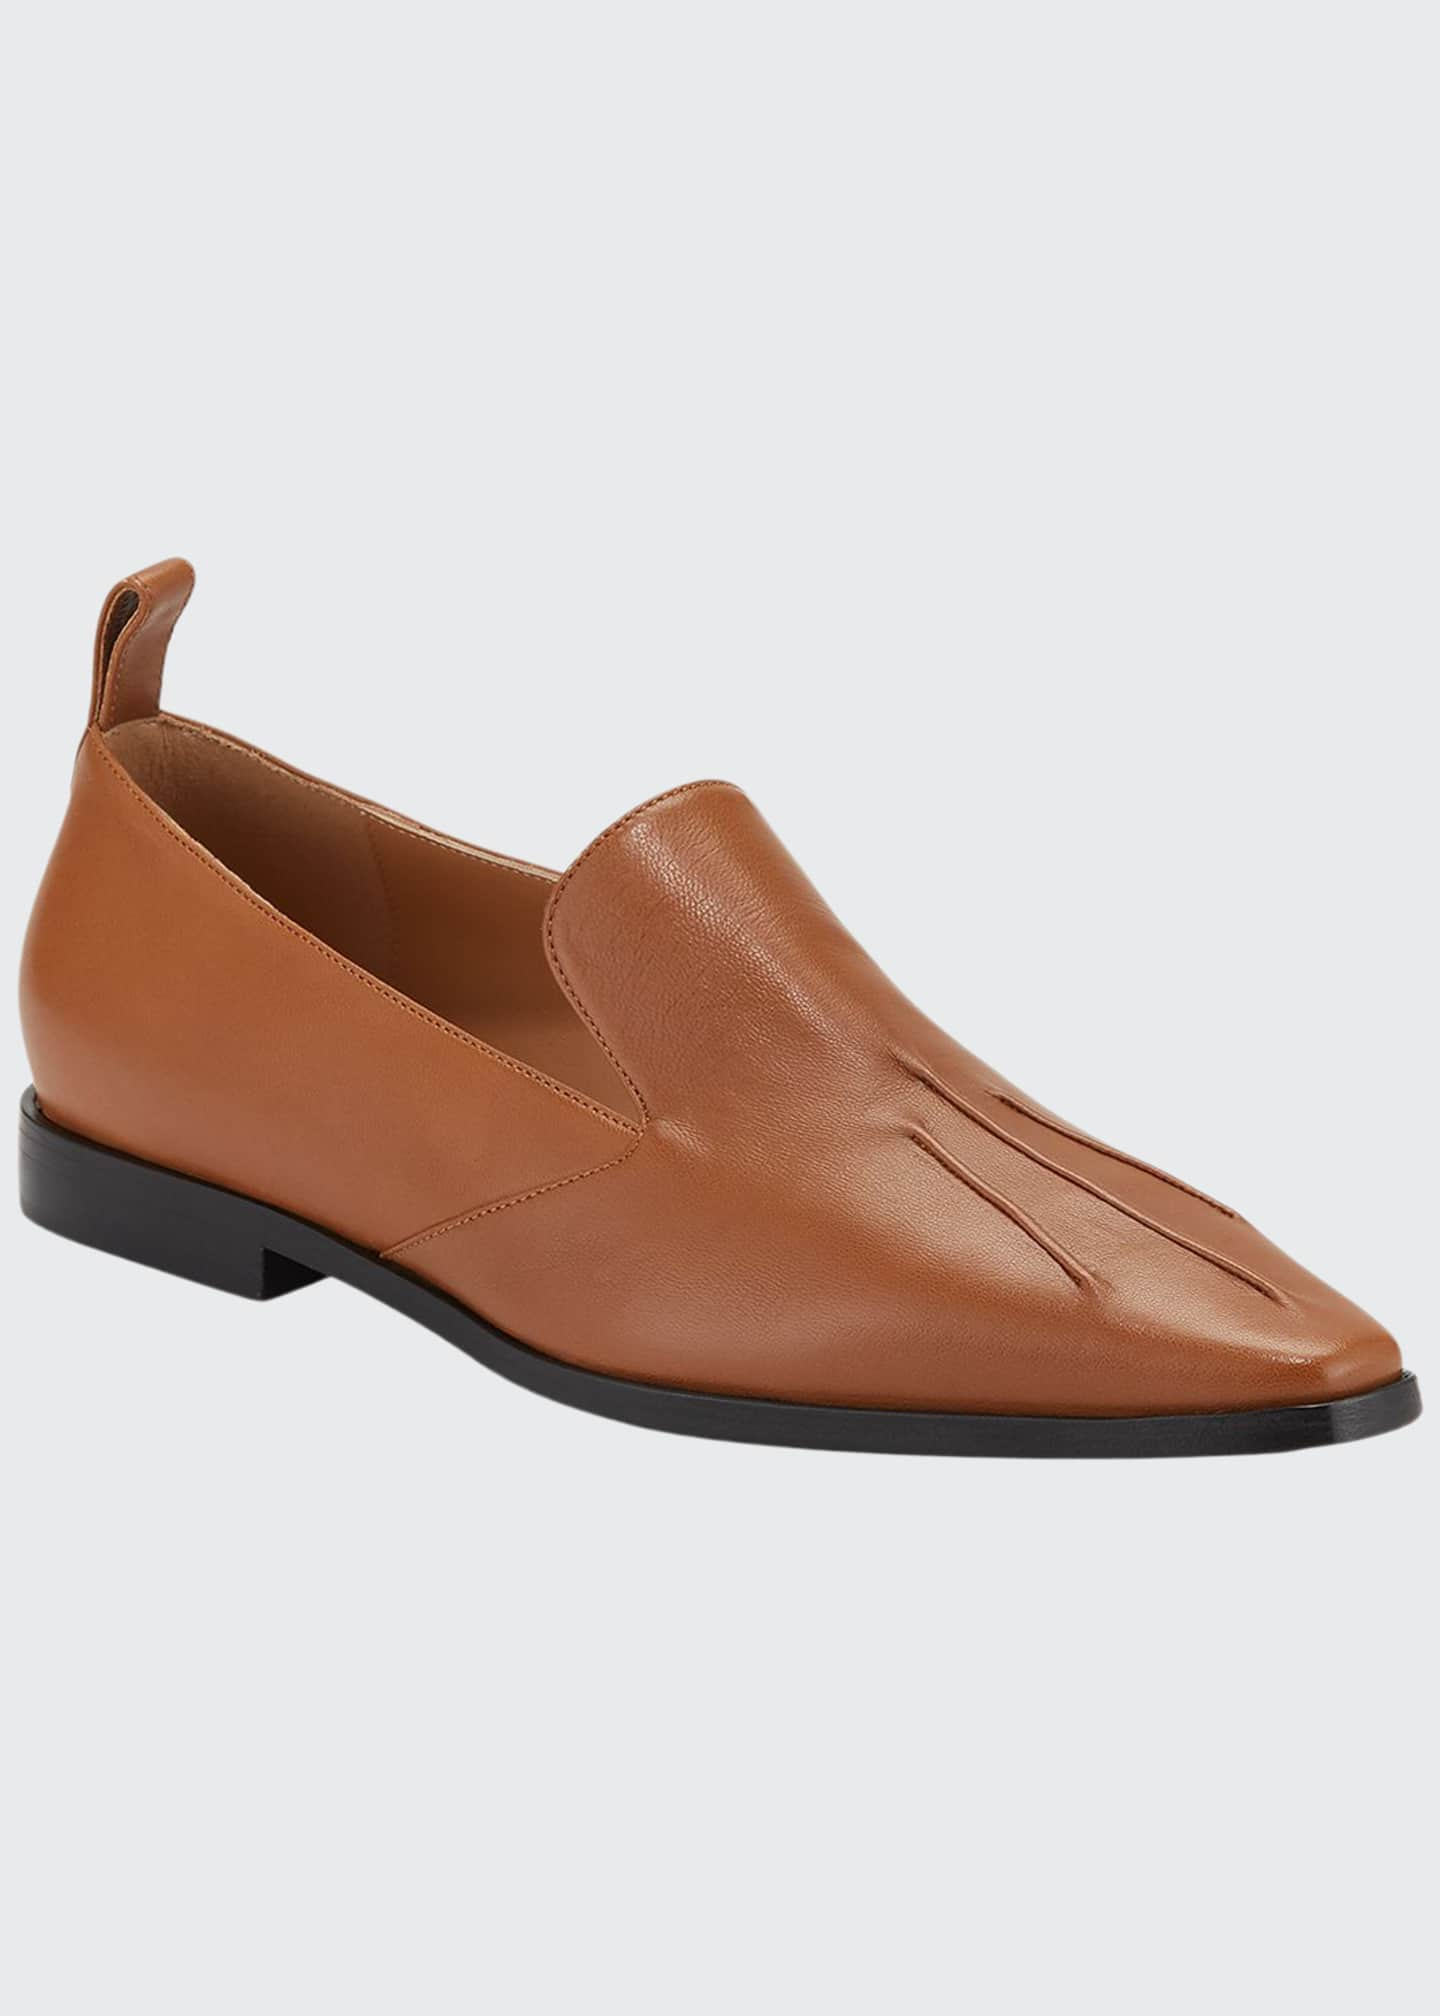 Dries Van Noten Flat Slip-On Leather Loafers